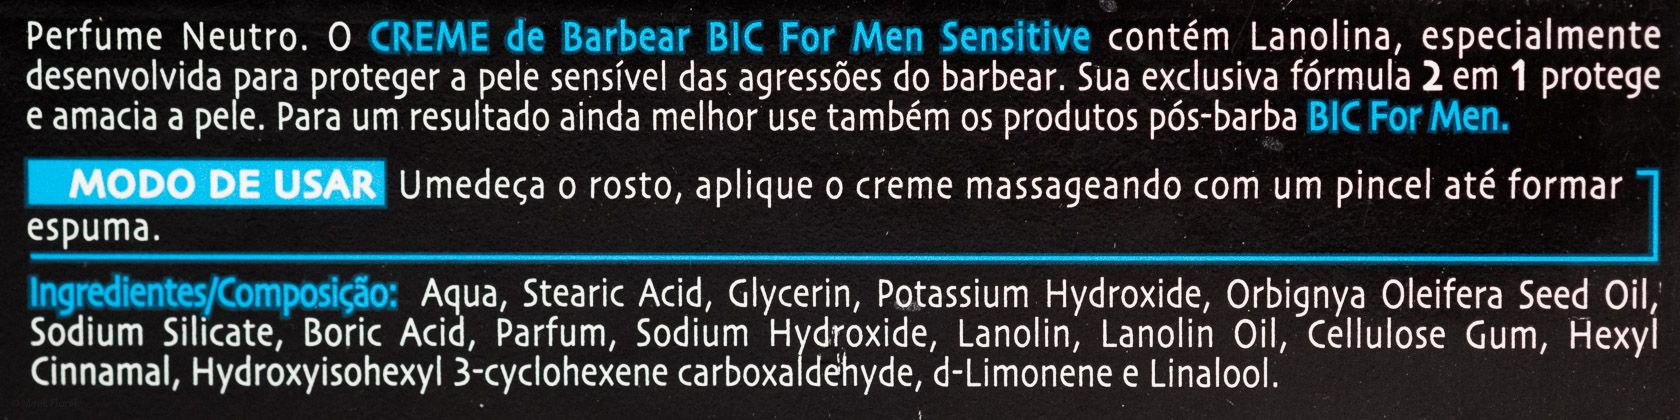 Skład kremu do golenia BiC Sensitive Creme de Barbear (Shaving Cream)